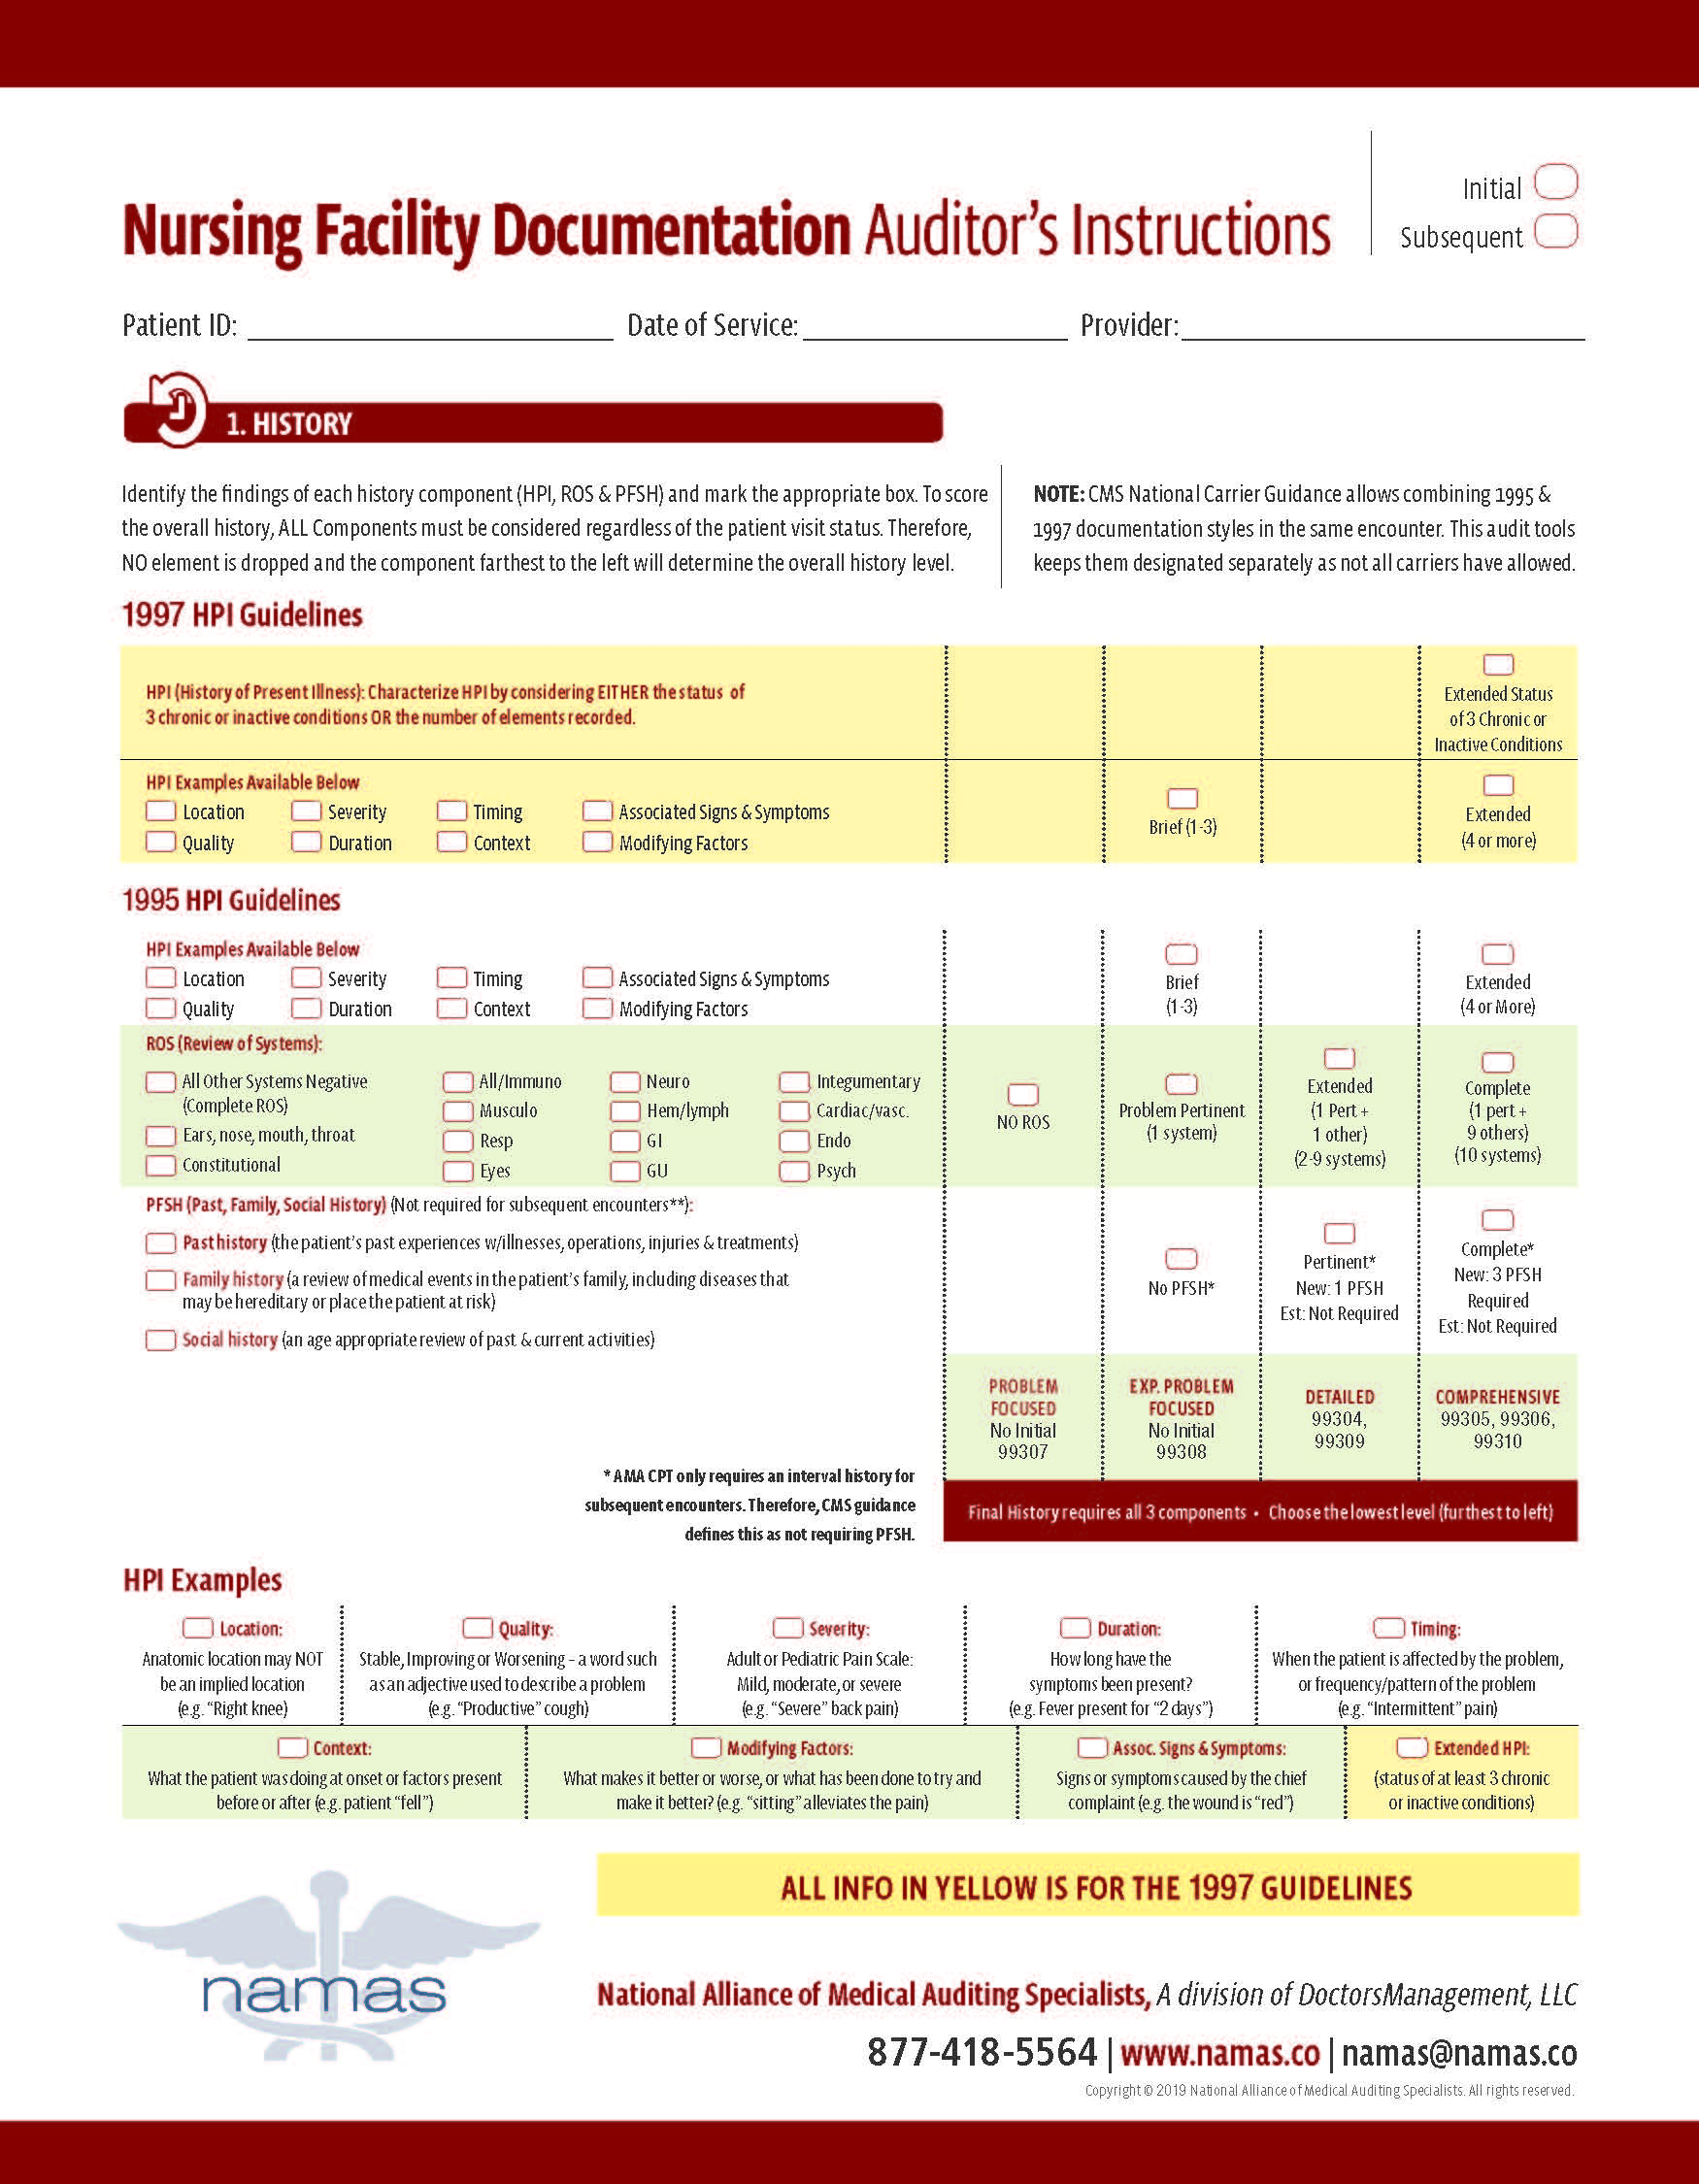 Namas Medical Auditing And Compliance Tools